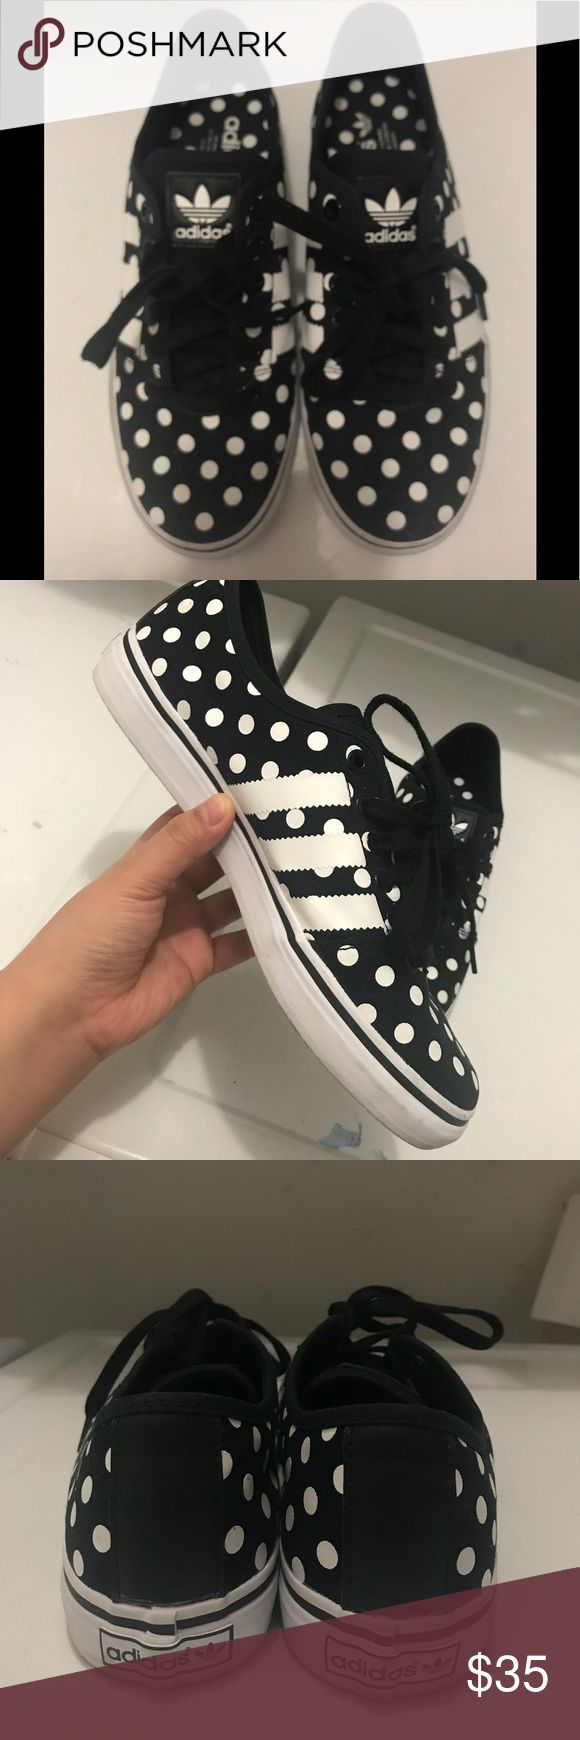 Adidas ADRIA LOW👟 Black and white polka dots style ☺️ worn for just a couple of times! like new!!! ❤️ still have the original box :) adidas Shoes Sneakers